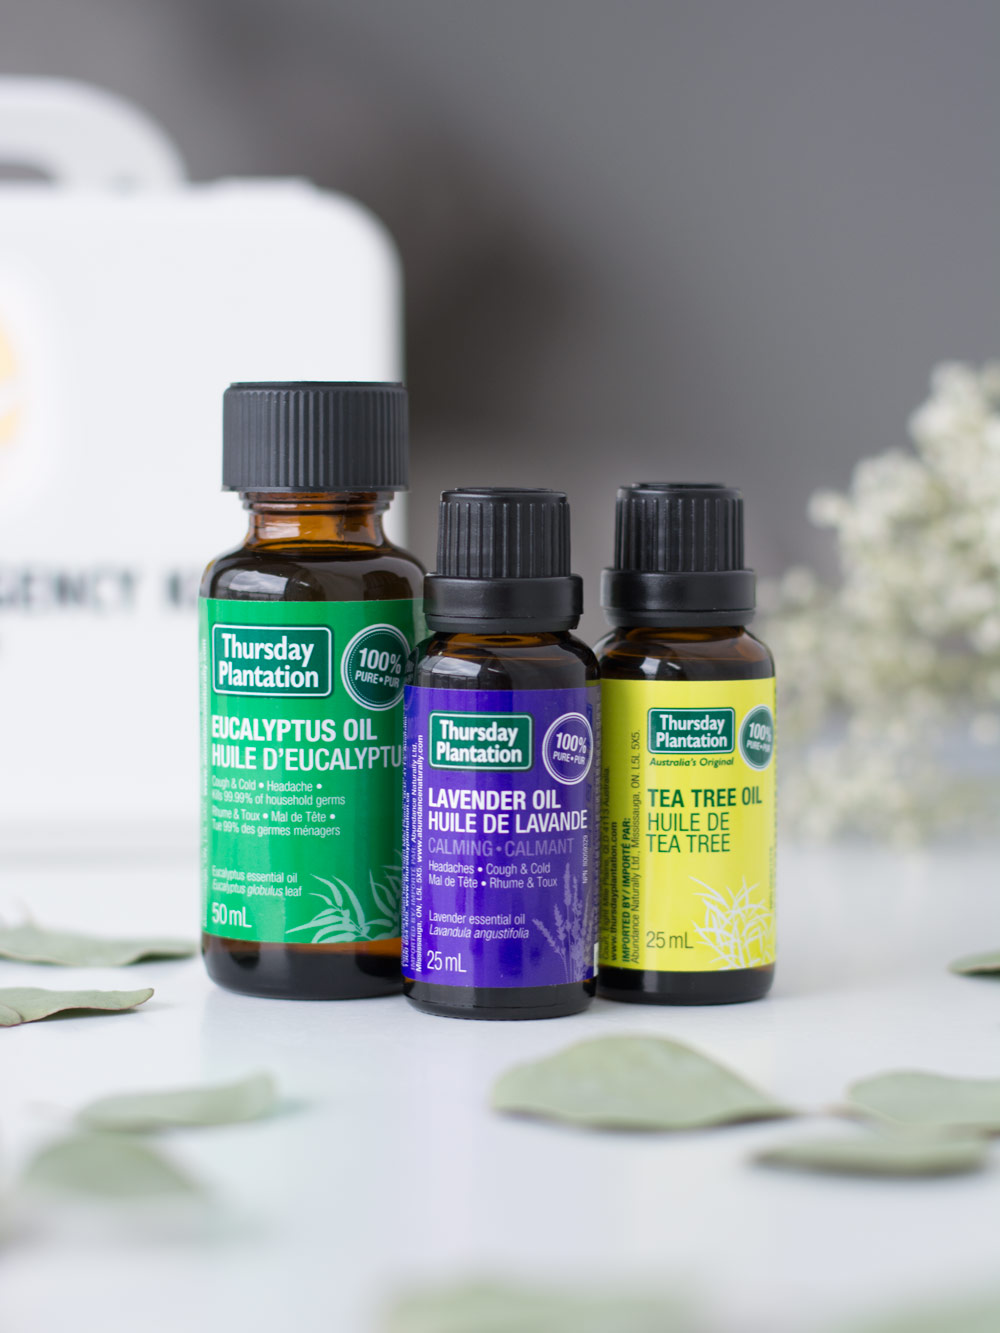 How to use essential oils to treat cold and flus and for better health